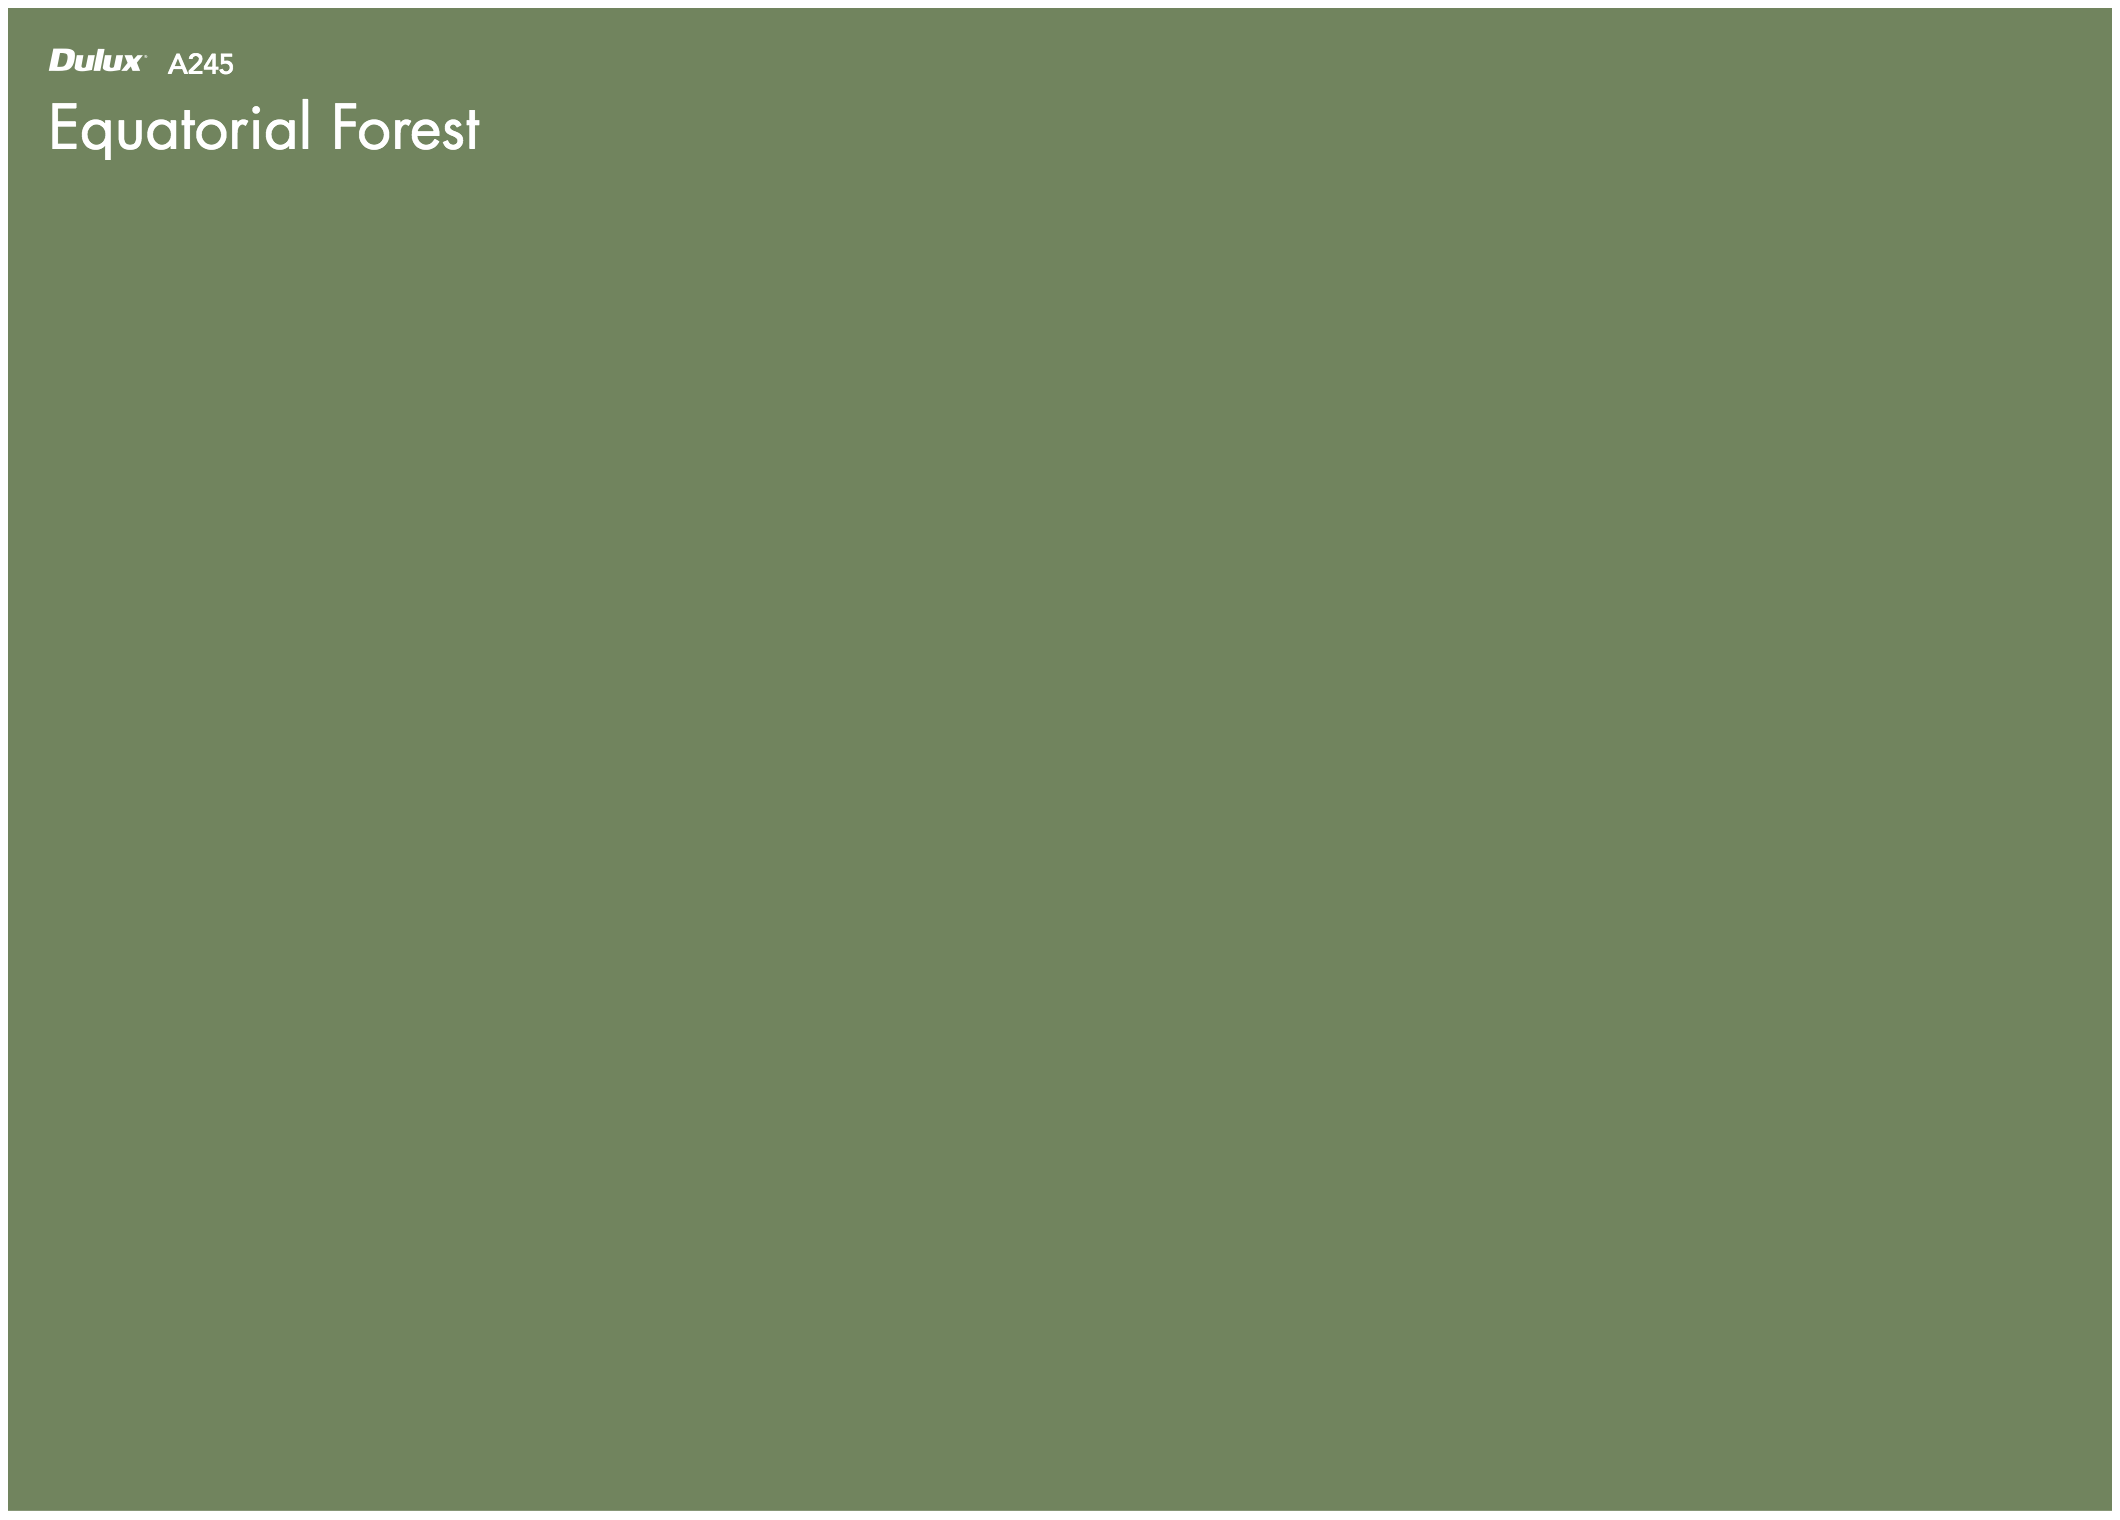 Olive reserve ud/eb a221 olive leaf d a239 tambo tank ud a224 equatorial forest ud a245 alliance b a295 Dulux Equatorial Forest Dulux Equatorial Forest